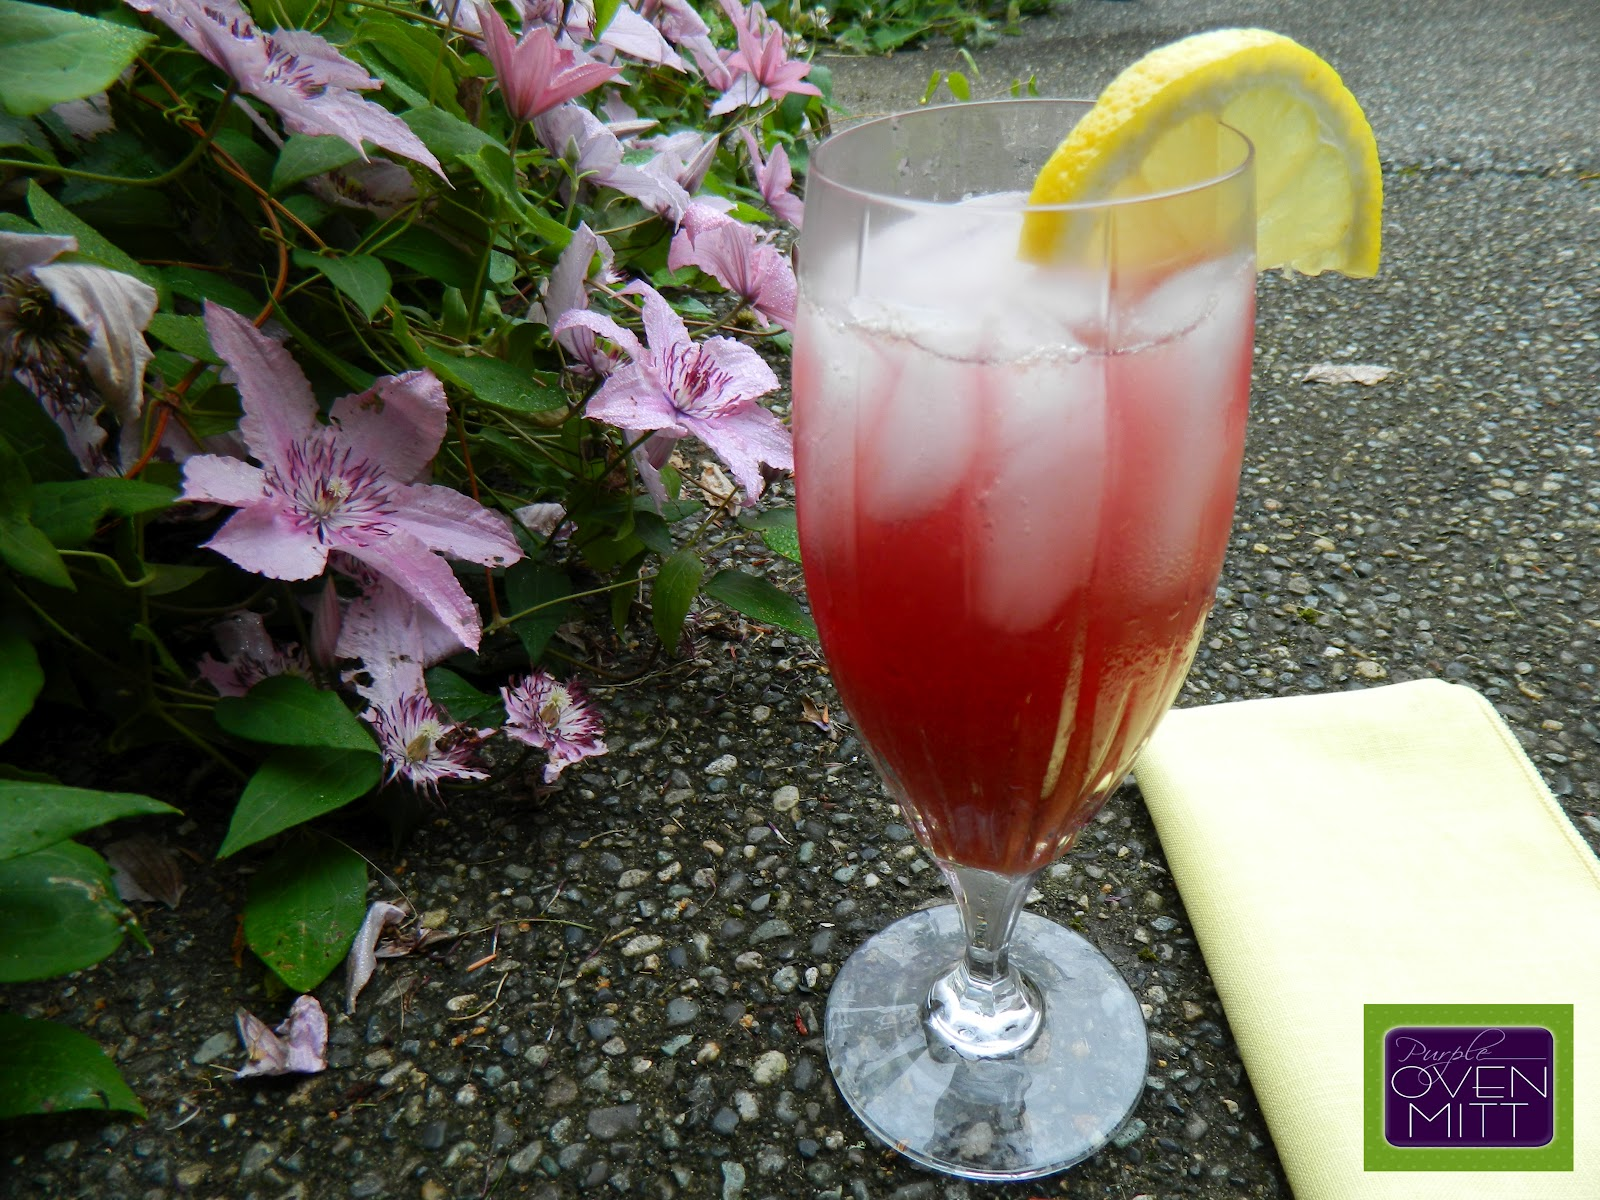 ... Family Blog | Purple Oven Mitt : Blueberry Lemon Mint Iced Green Tea